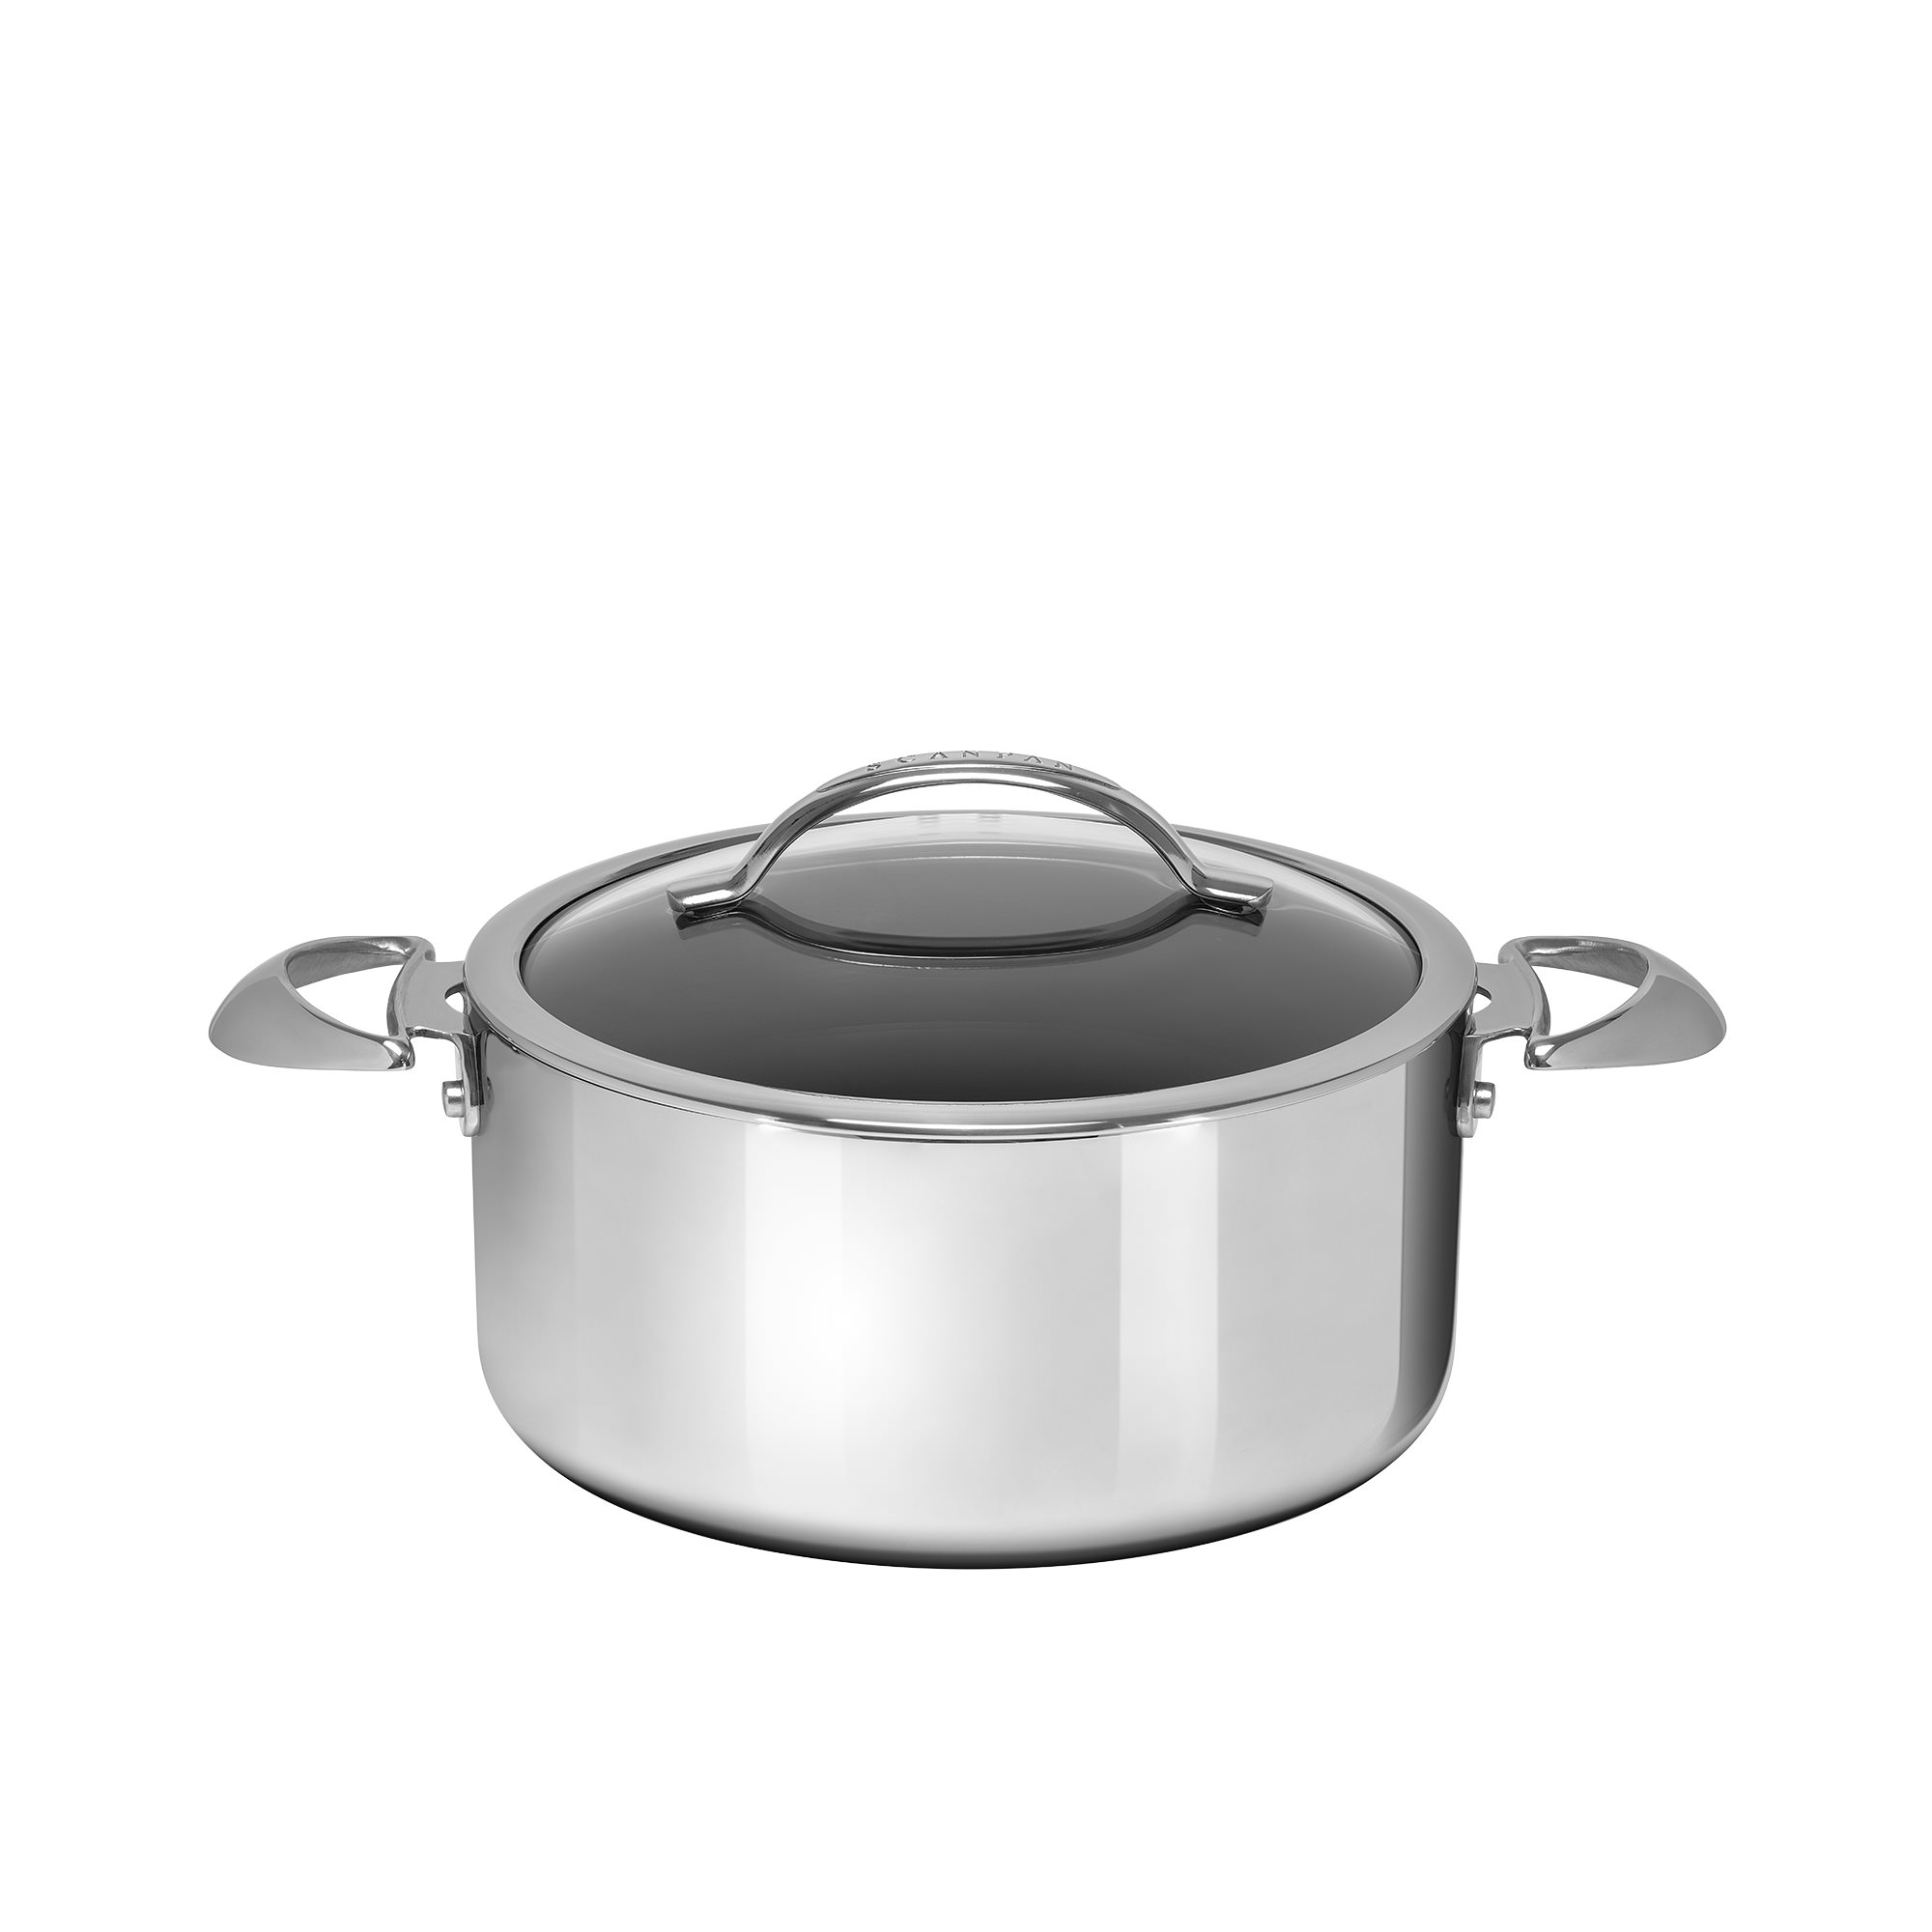 Scanpan HaptIQ Dutch Oven 24cm - 4.8L